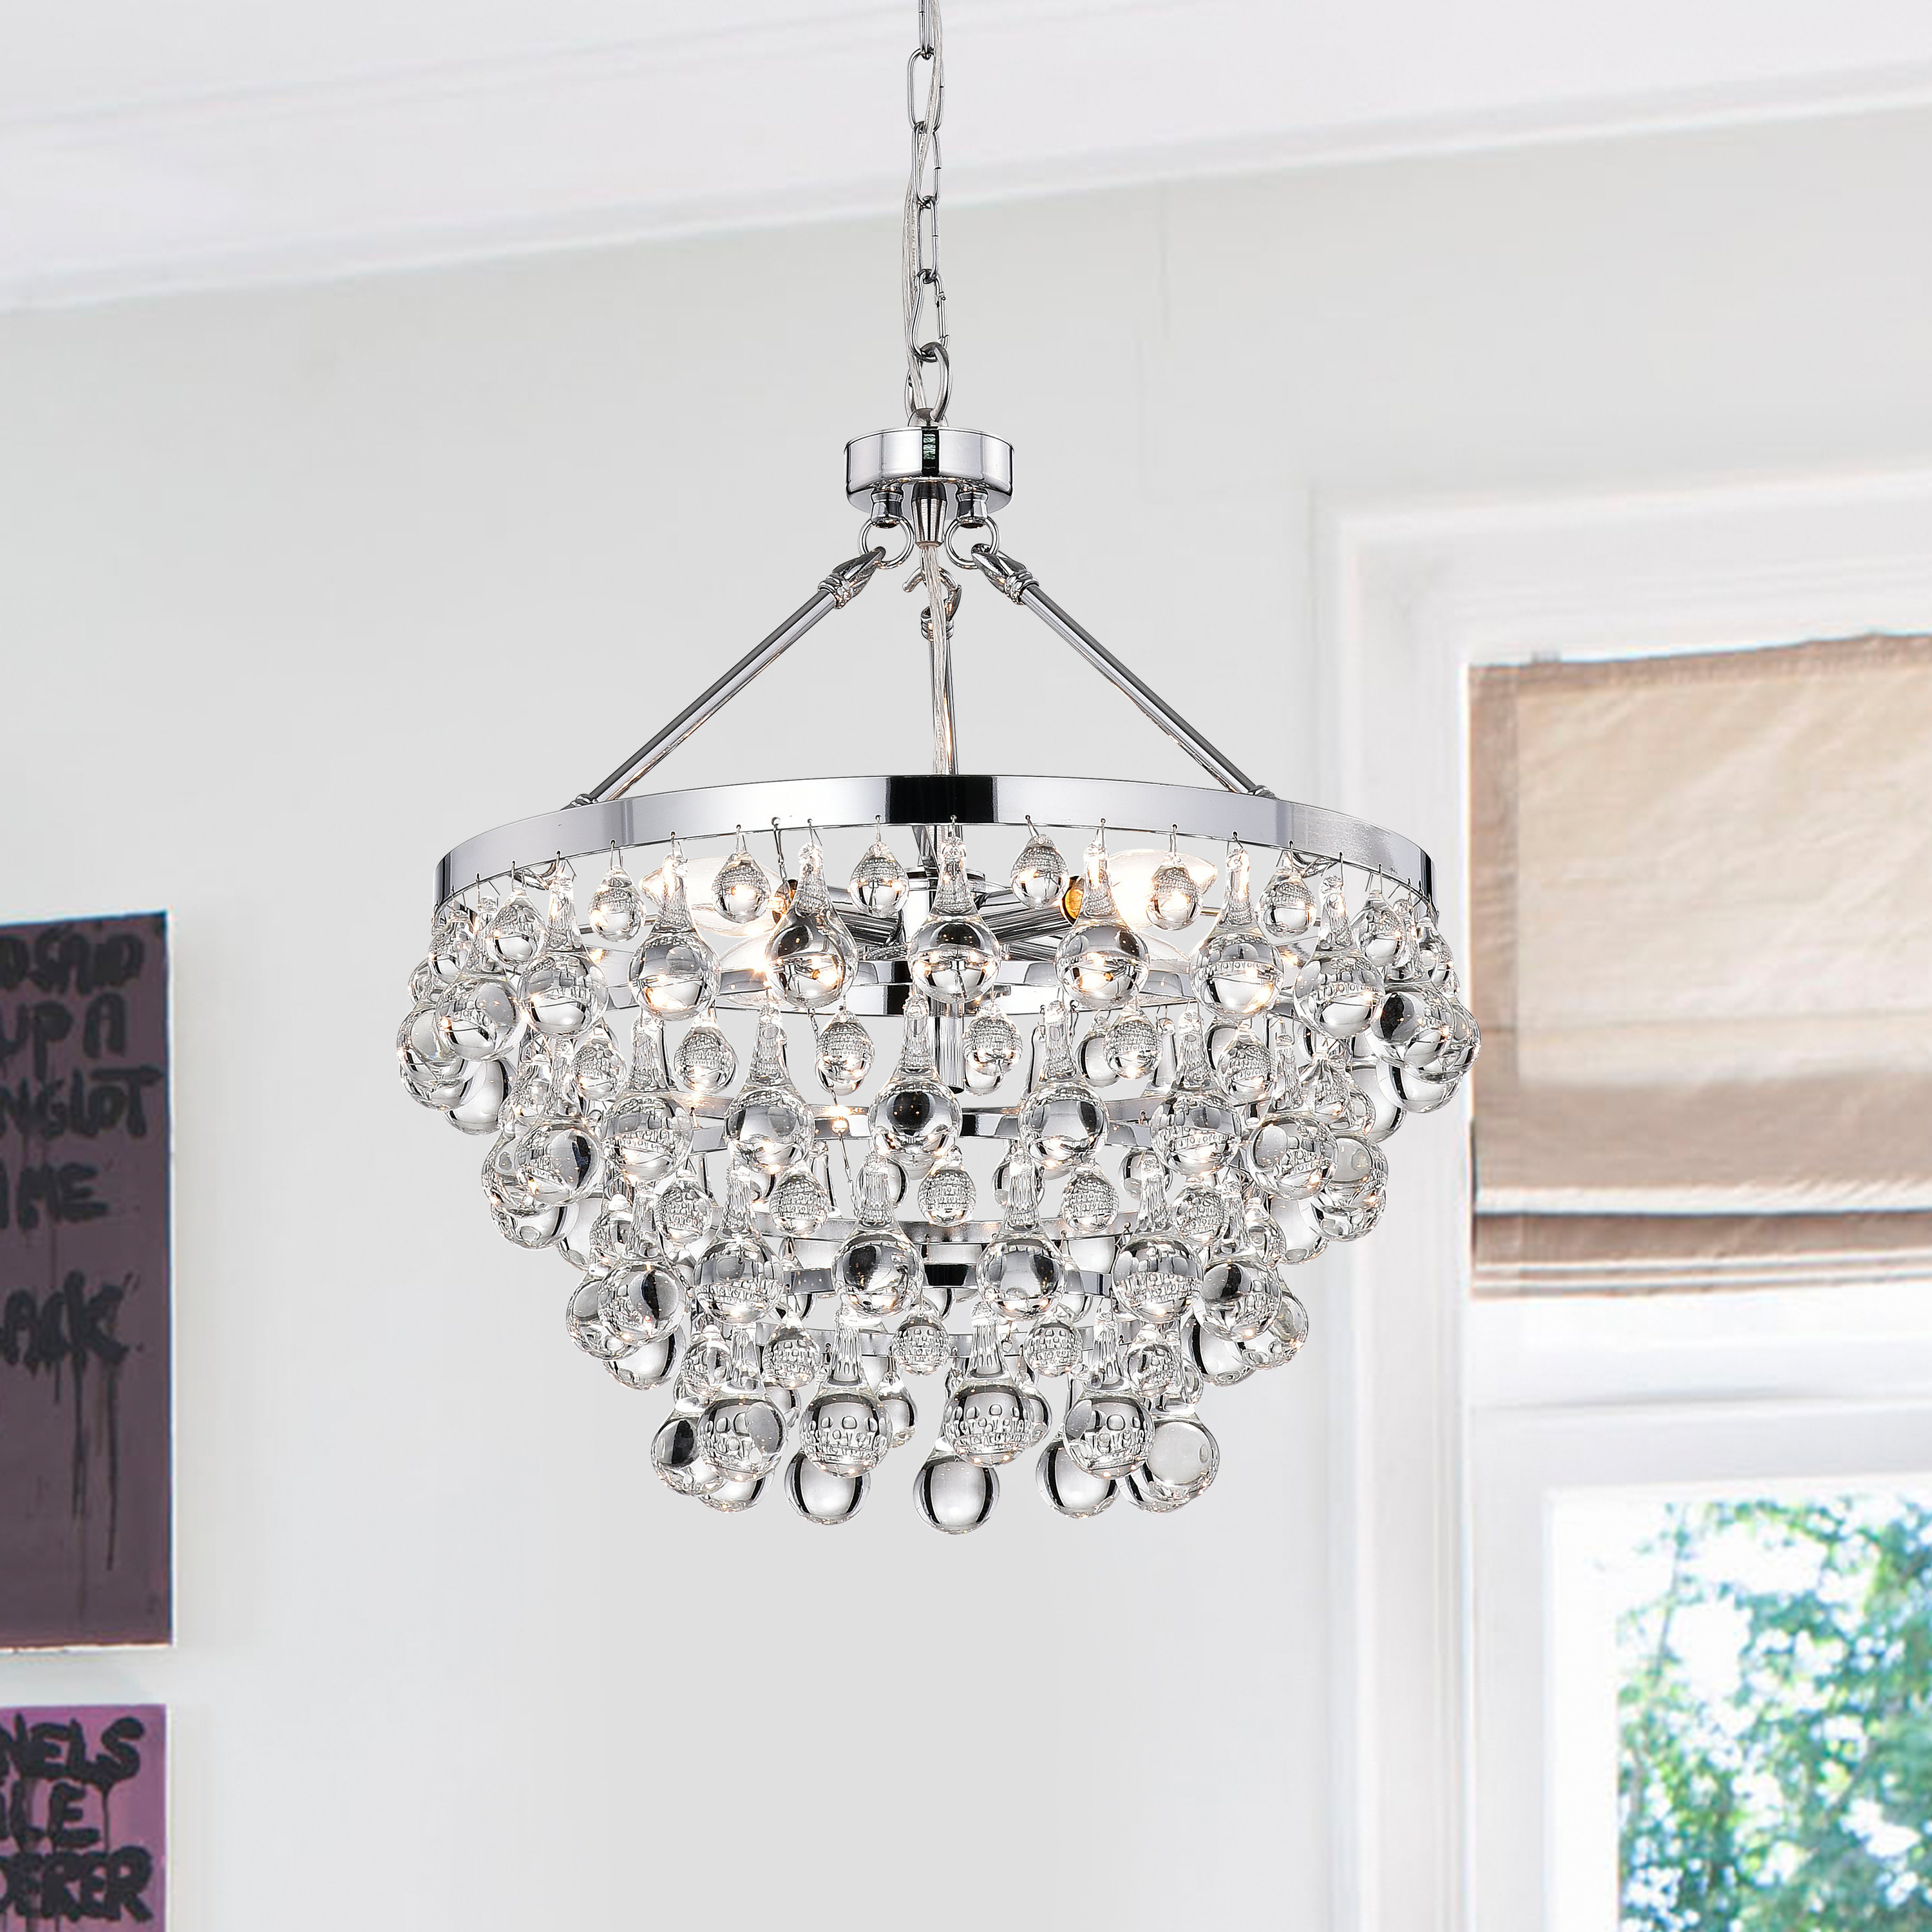 Ahern 5 Light Crystal Chandelier Intended For Bramers 6 Light Novelty Chandeliers (View 12 of 30)